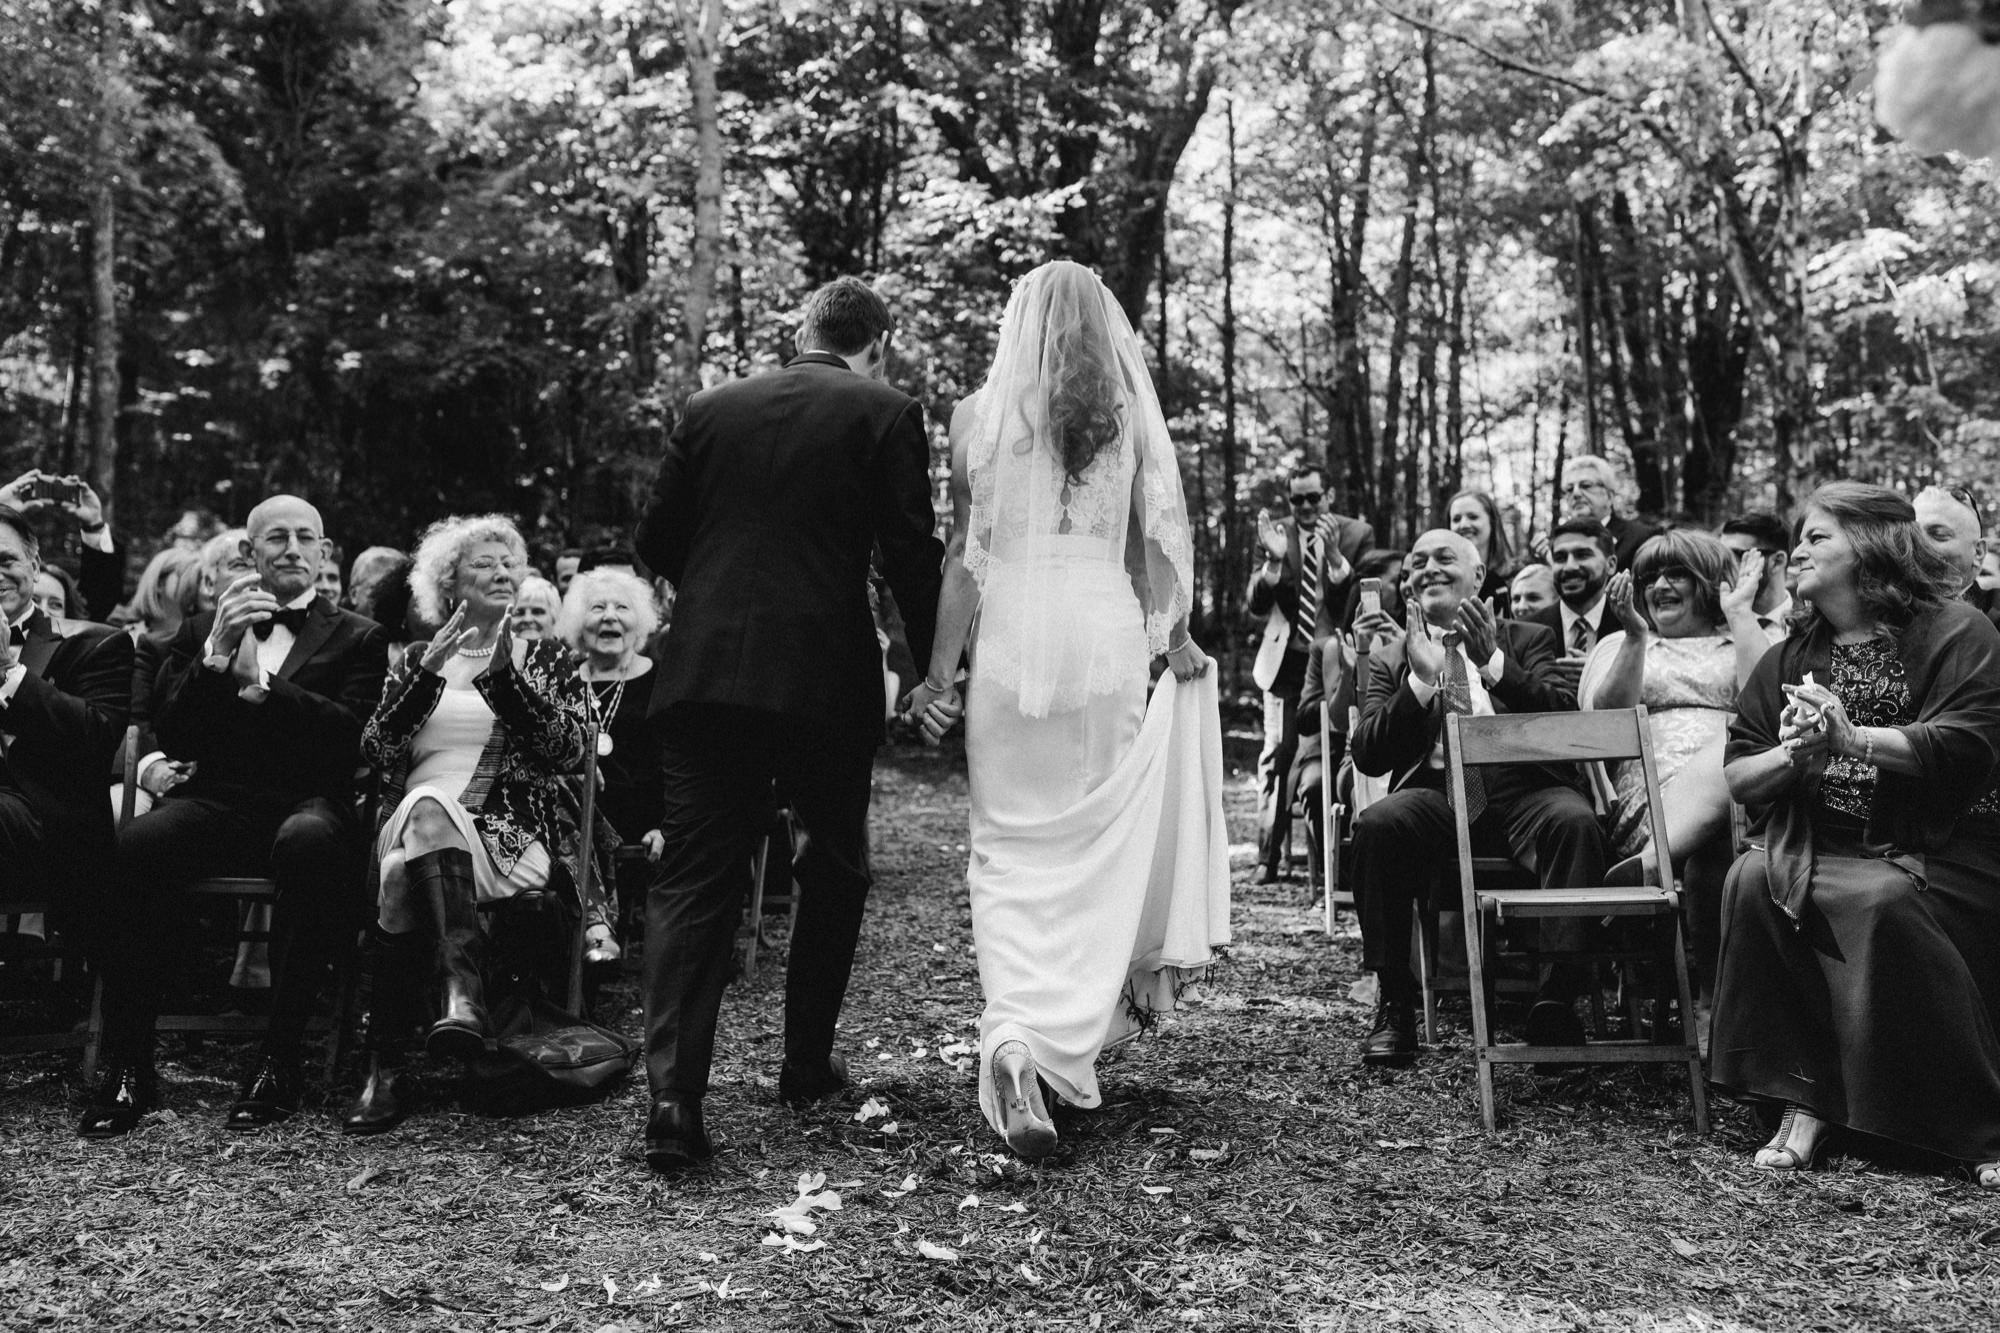 bride and groom departing ceremony at the Pine Grove location at Roxbury Barn Estate in the Catskills New York